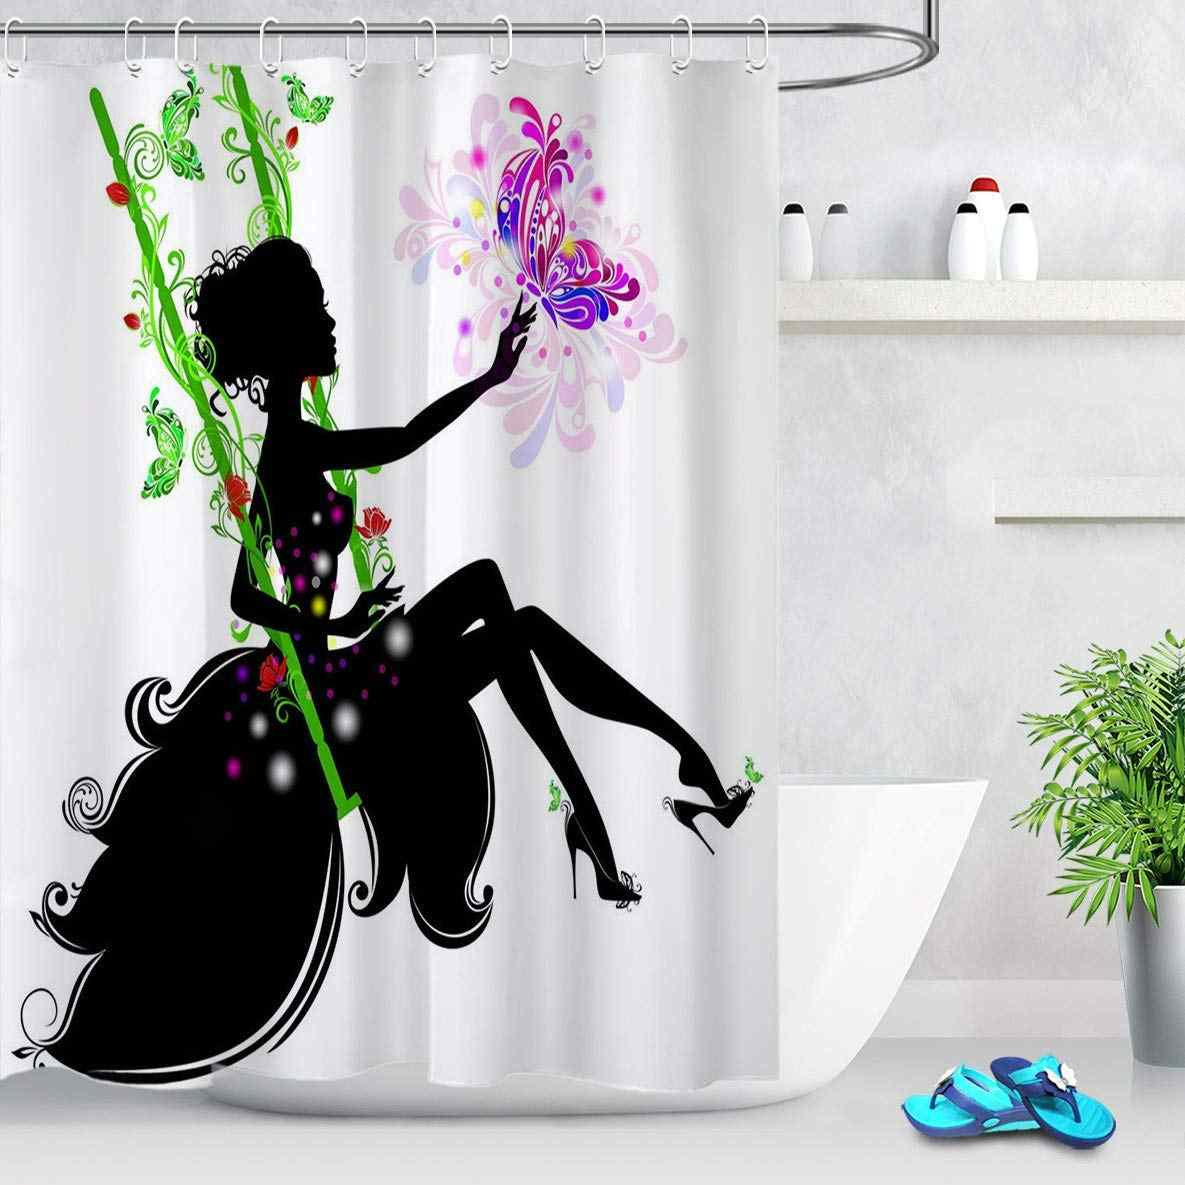 Feminine Decor Black Girl Magic Shower Curtain African American